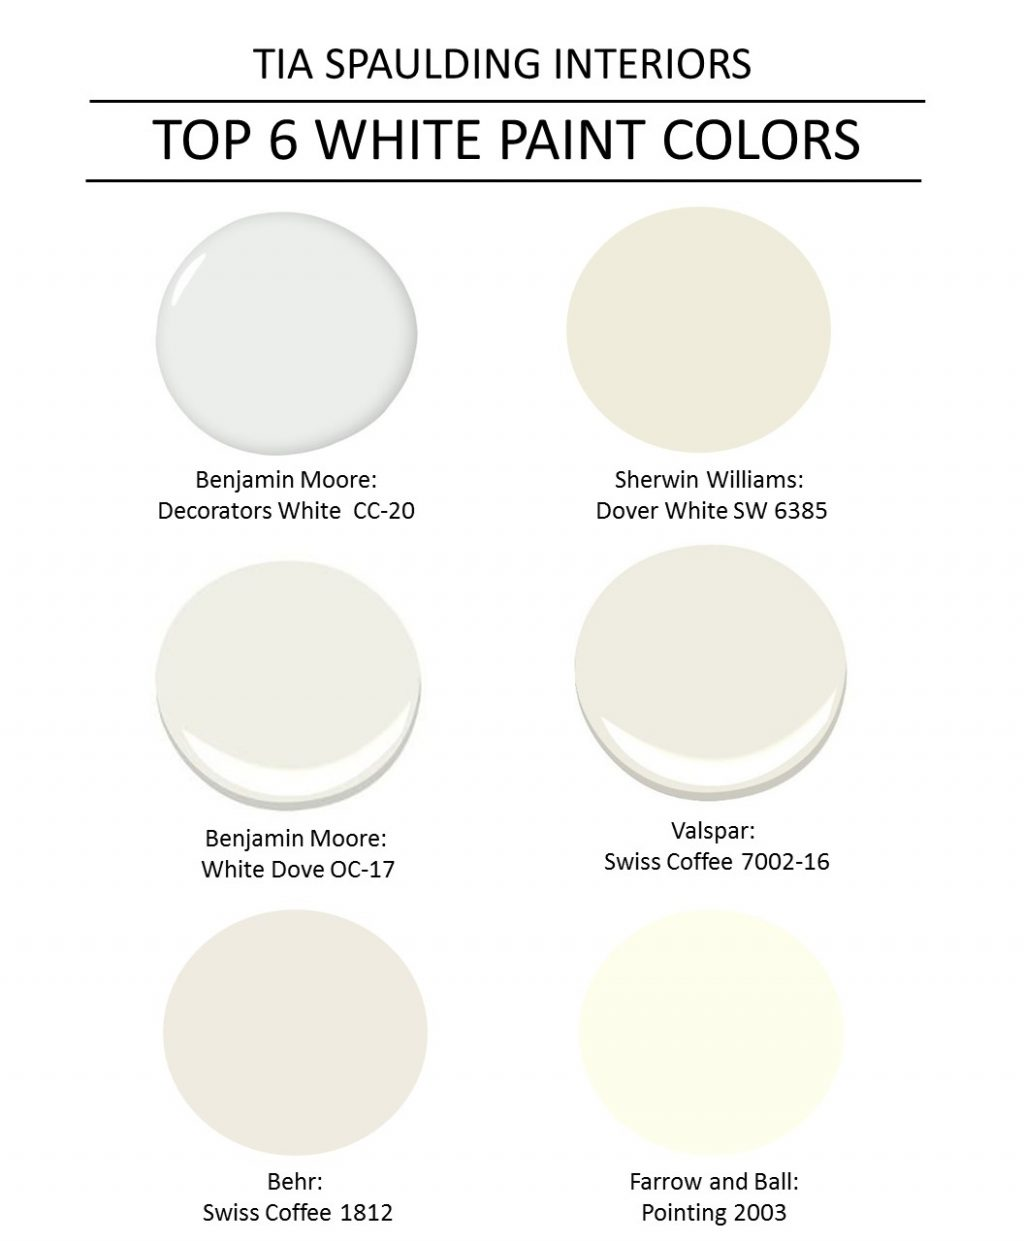 Best behr white paint colors 28 best behr white paint colors tricks for choosing Great paint colors